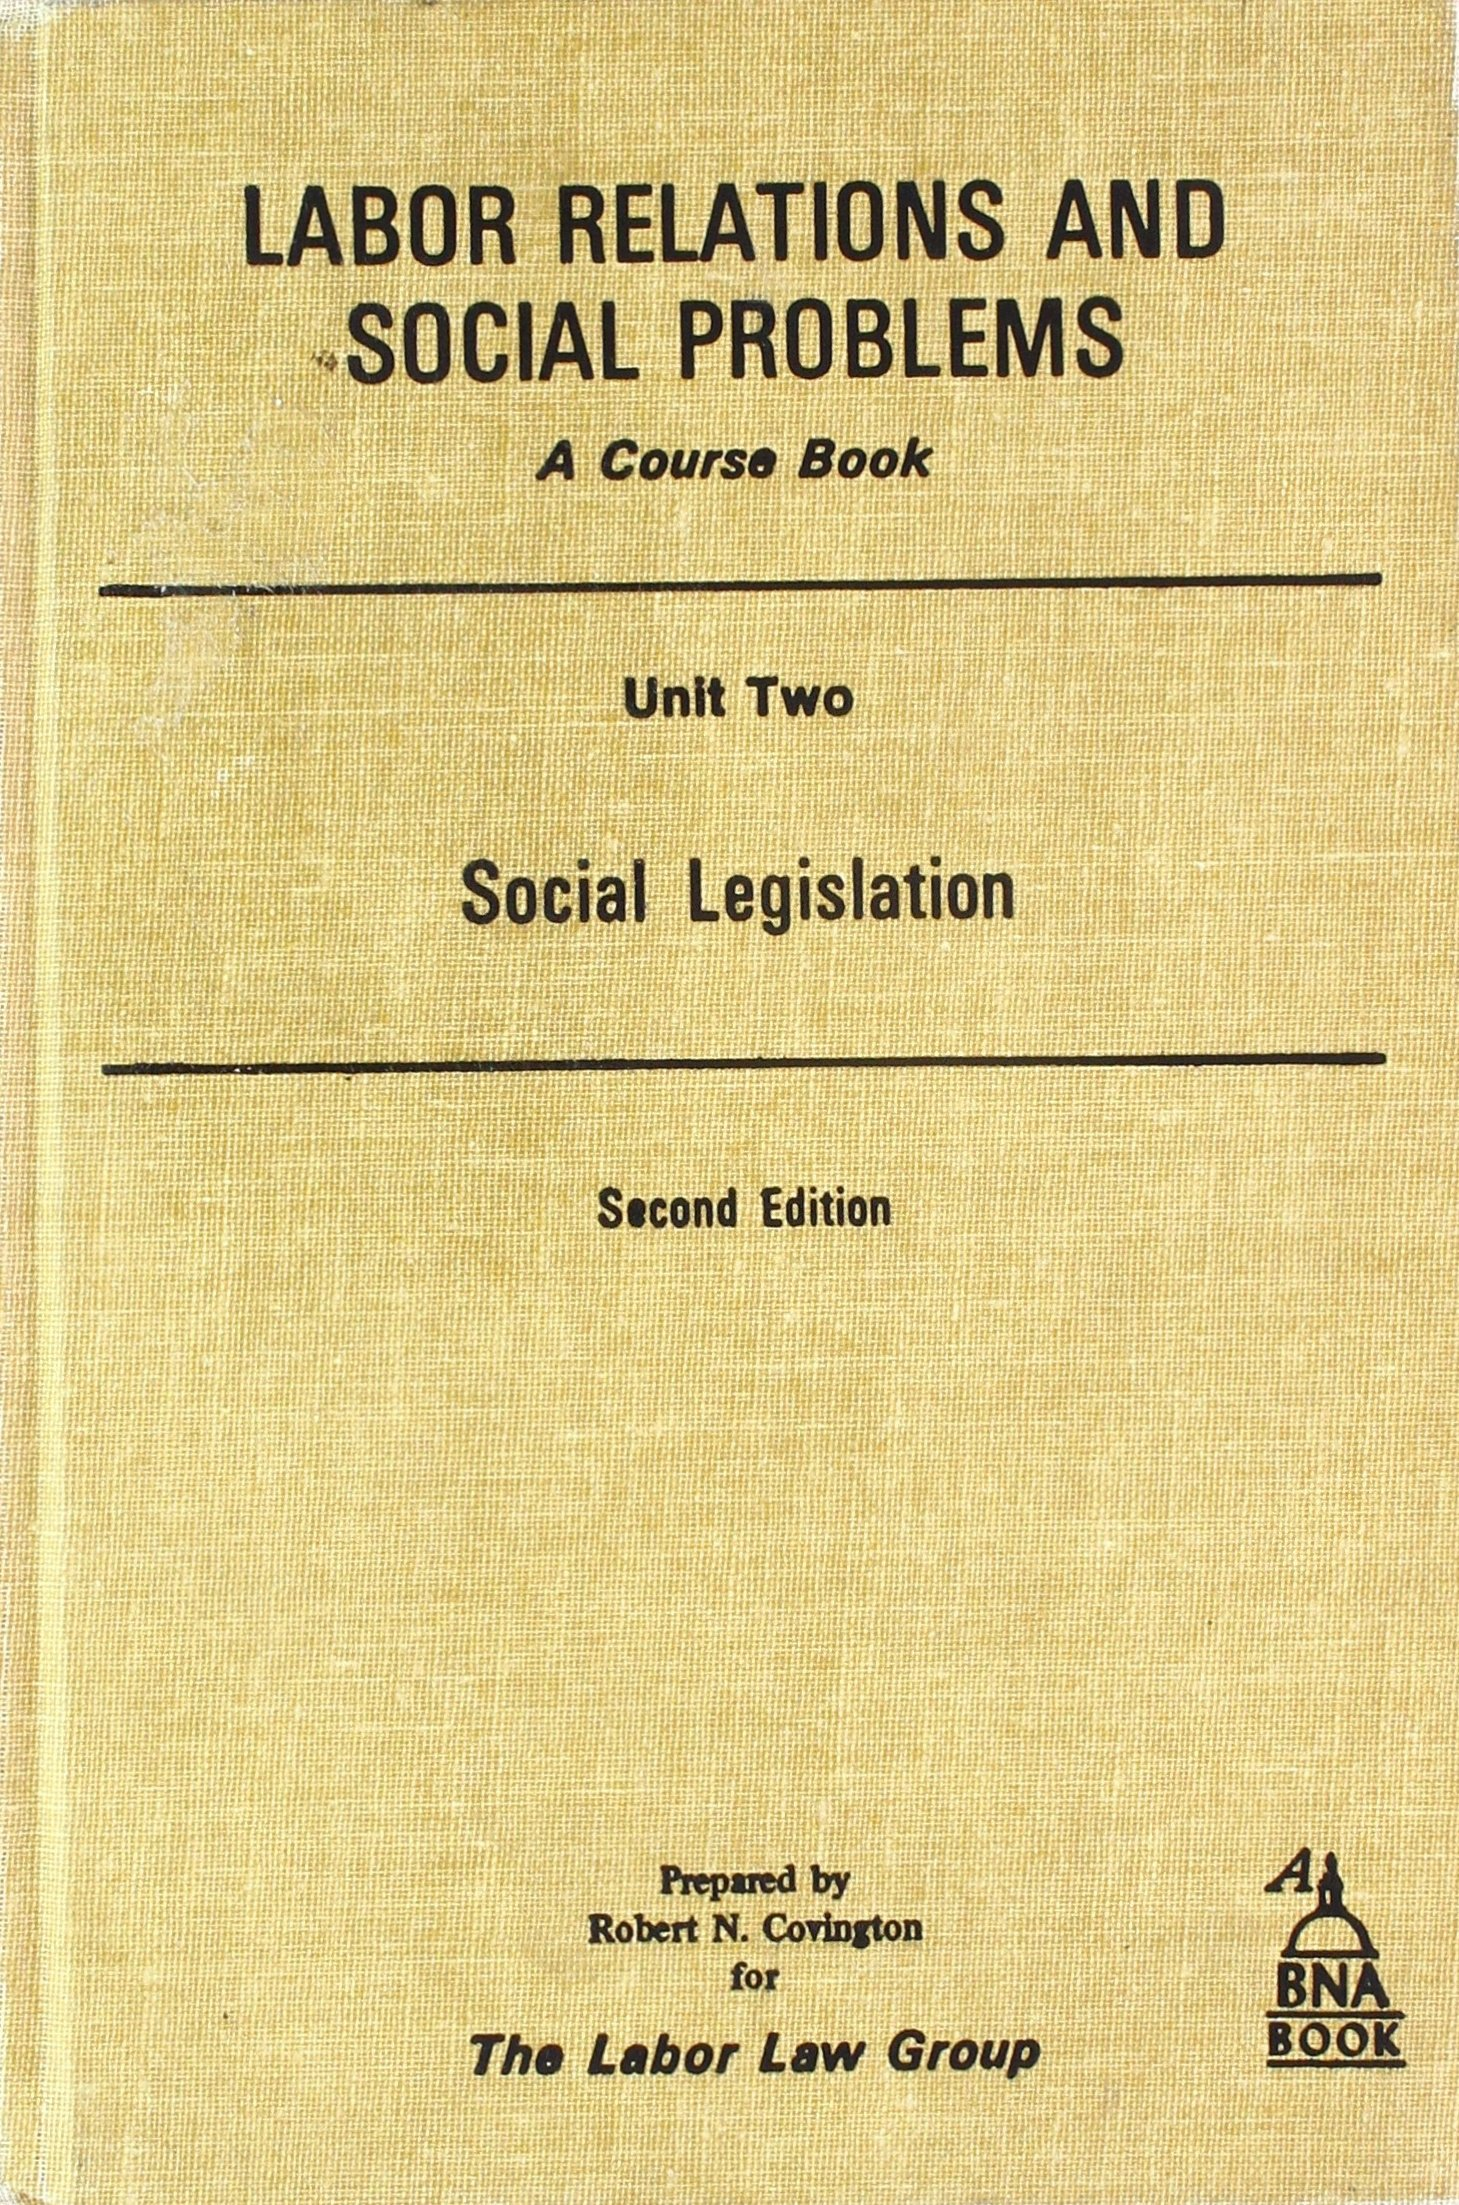 Social and labor relations